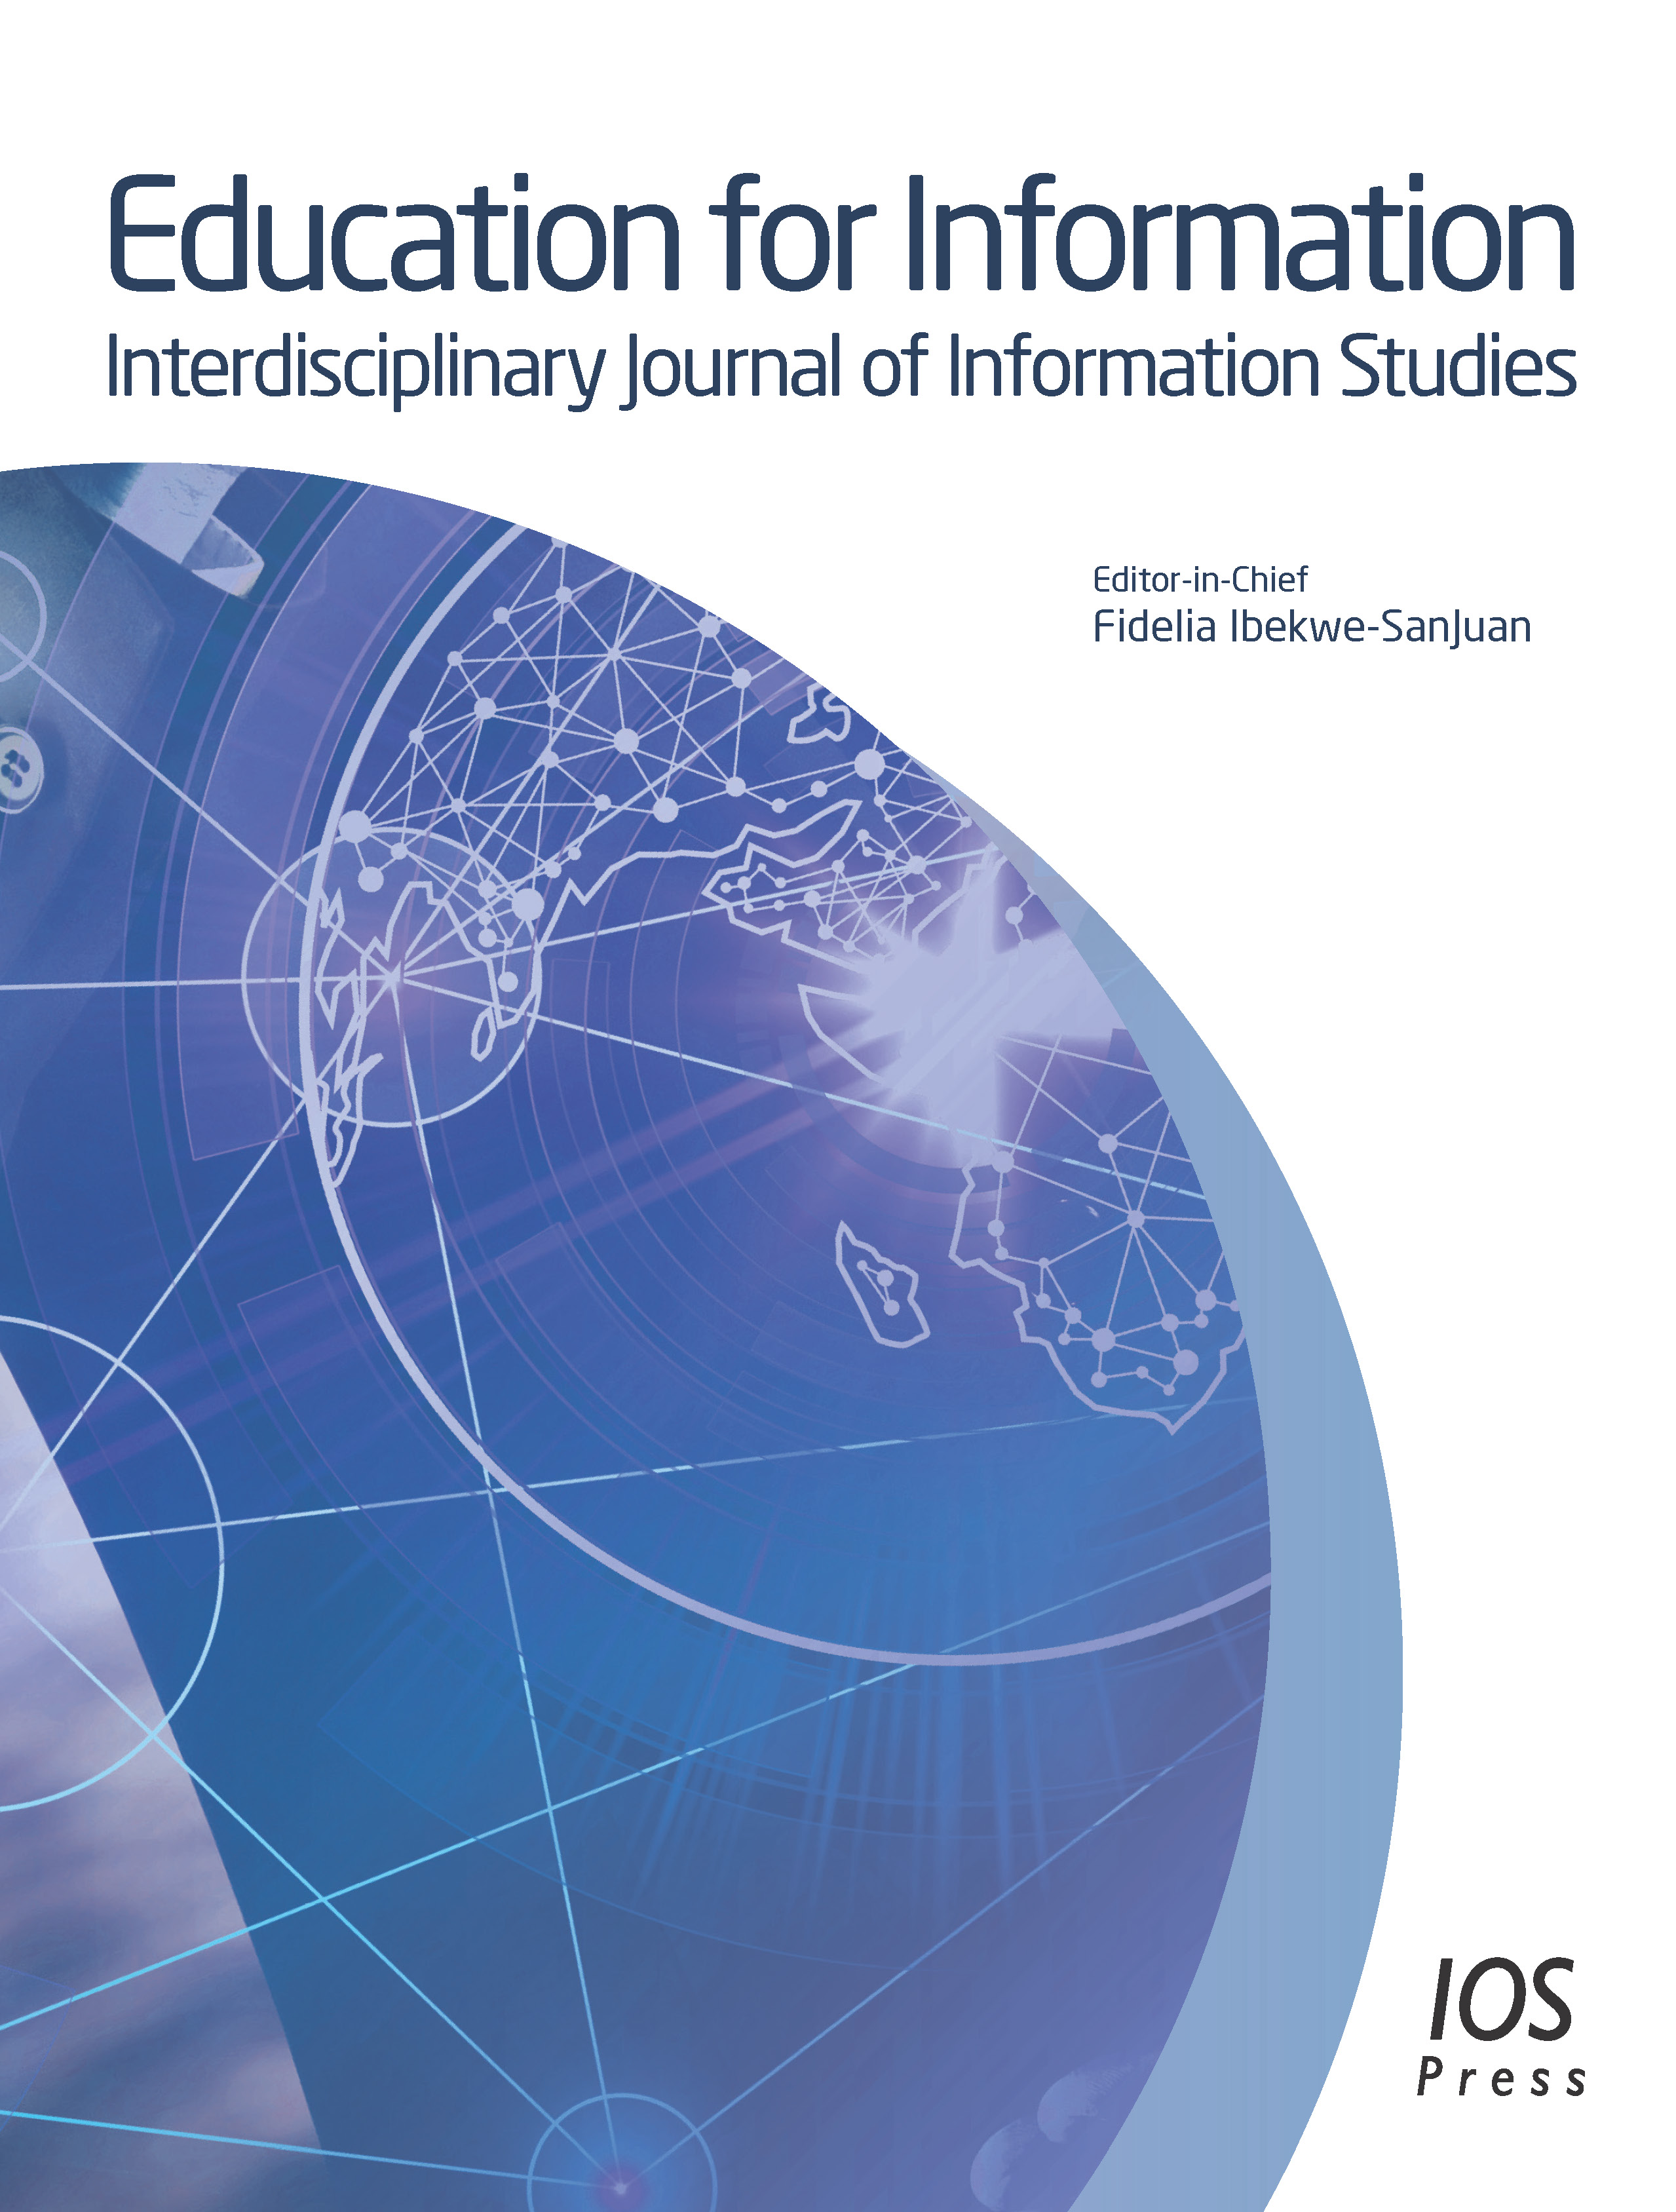 Education for Information - Volume 28, issue 2-4 - Journals